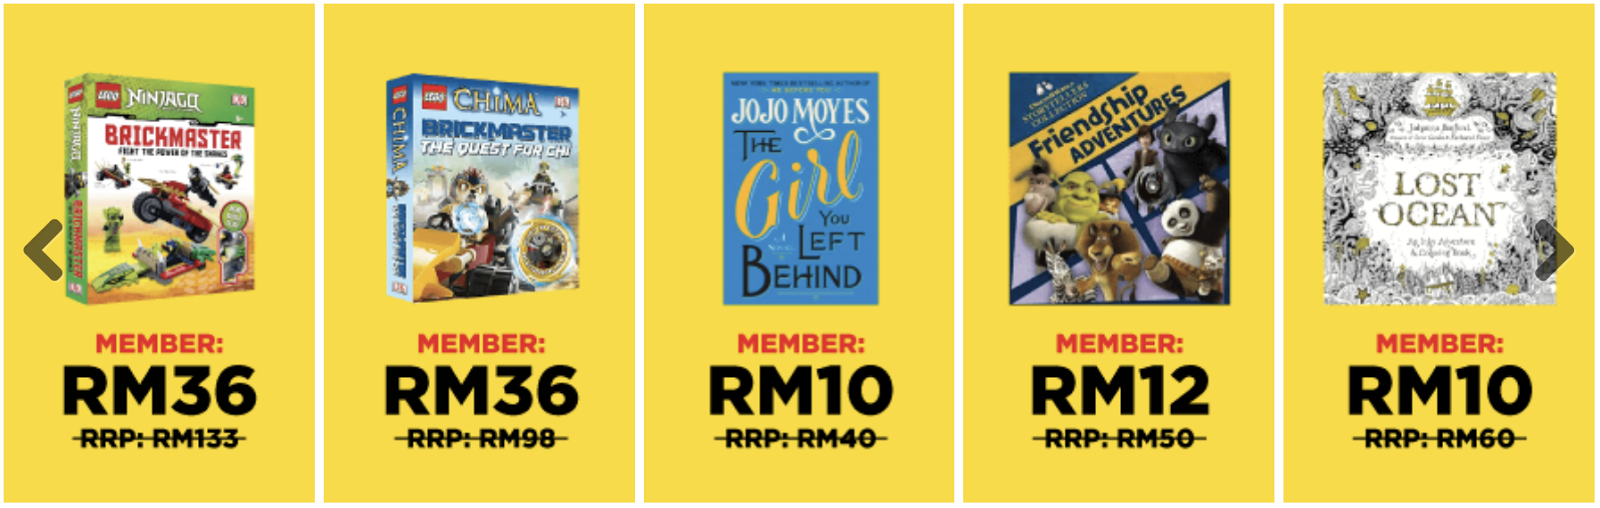 Big Bad Wolf Book Sale 75 95 Off Miecc The Mines 24 Hours